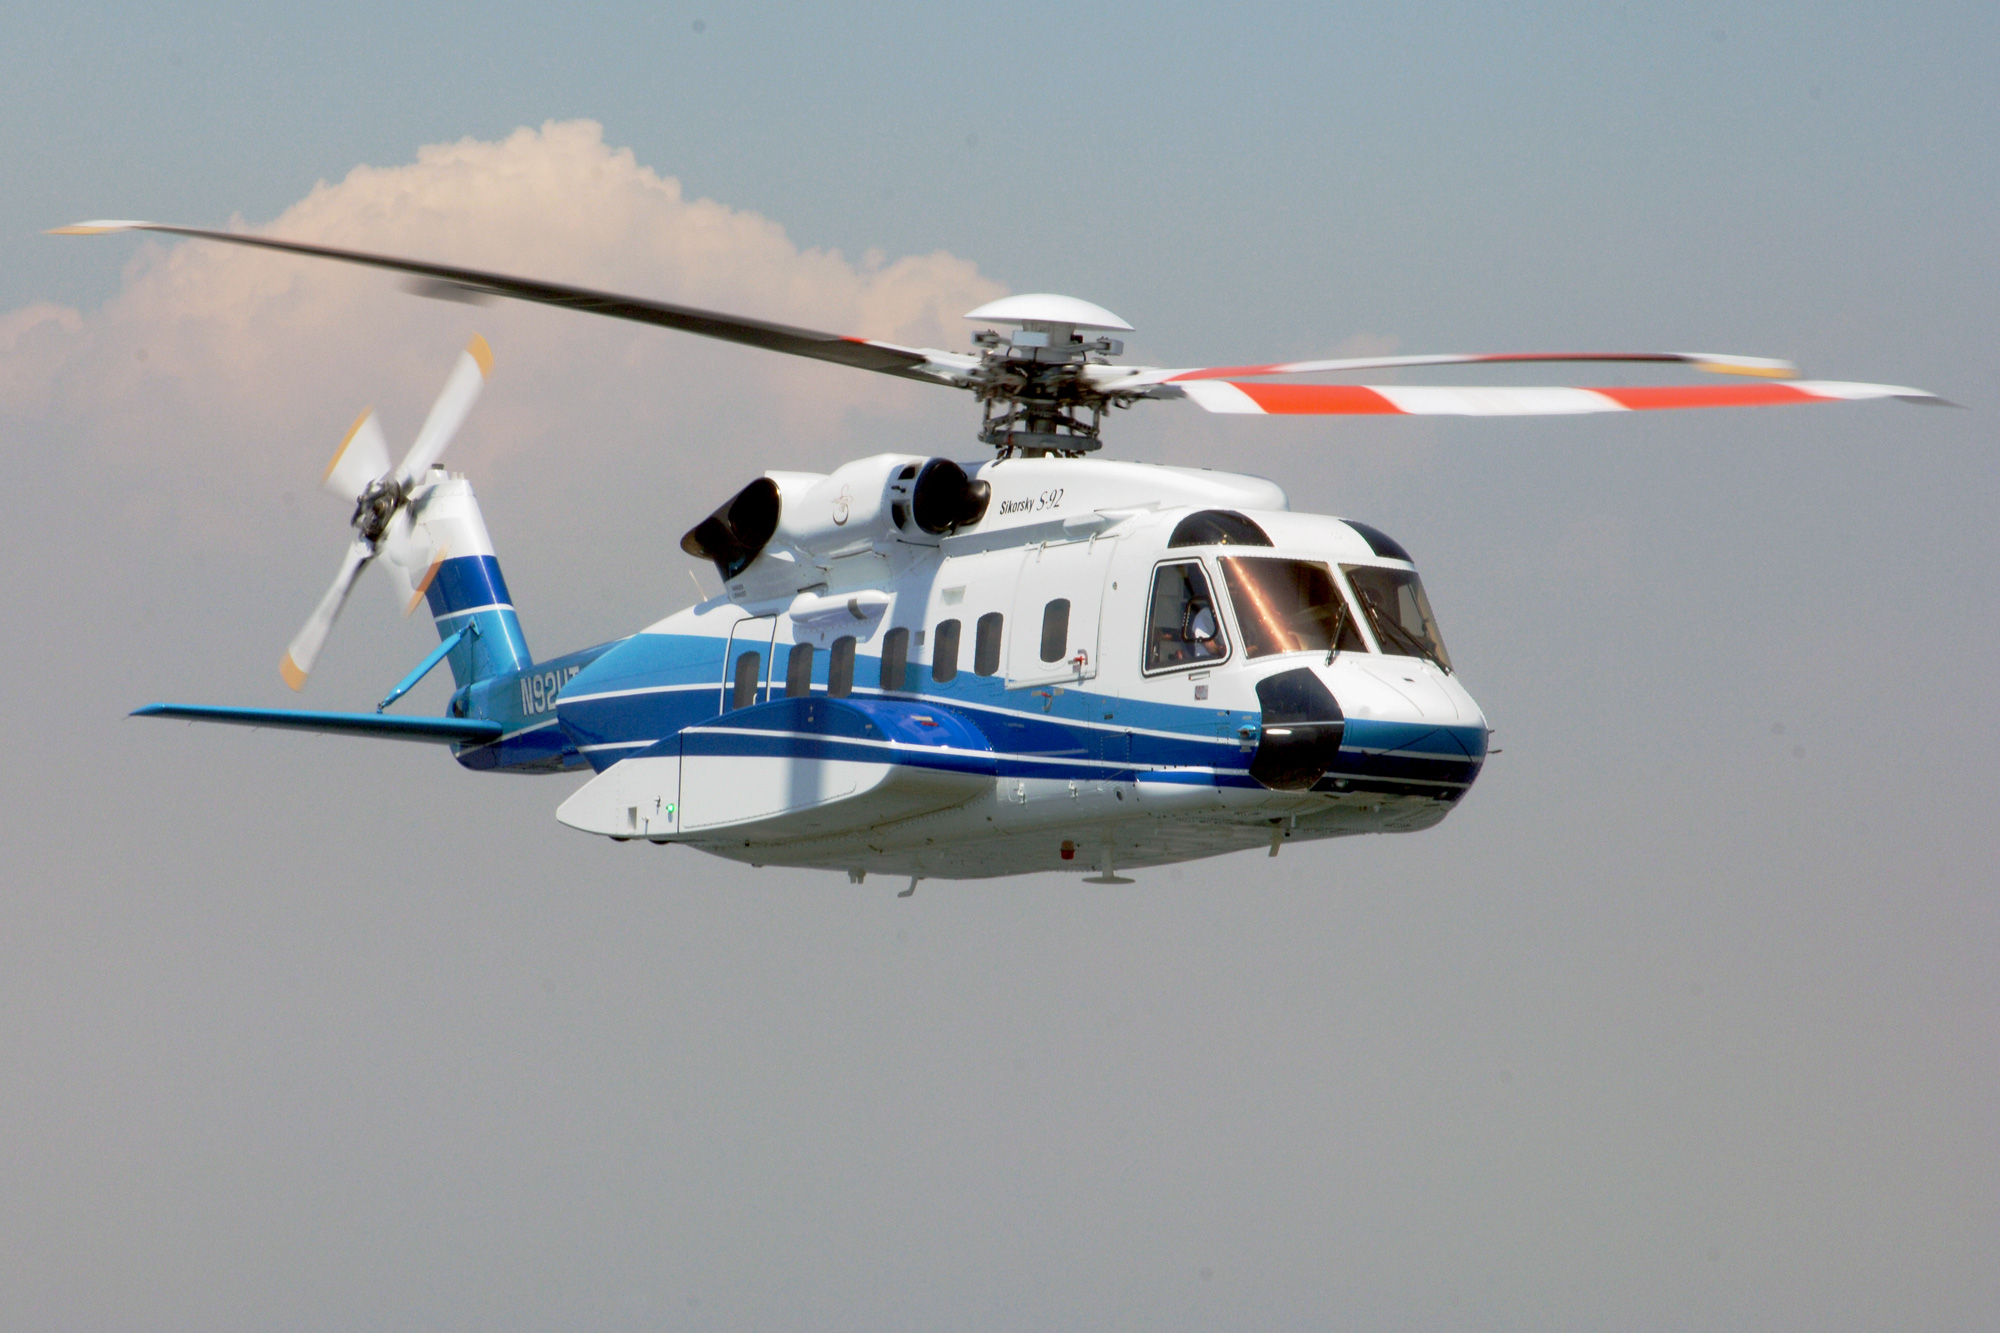 helicopter charter and training with Lockheed Martin Buying Sikorsky 9b Cash on Vietnam Buys More Defense Equipment Israel likewise Sale plans as well Singapore Close Super Puma Replacement Choice besides Air Bp 2 together with Britain France Jointly Develop Future  bat Air System.